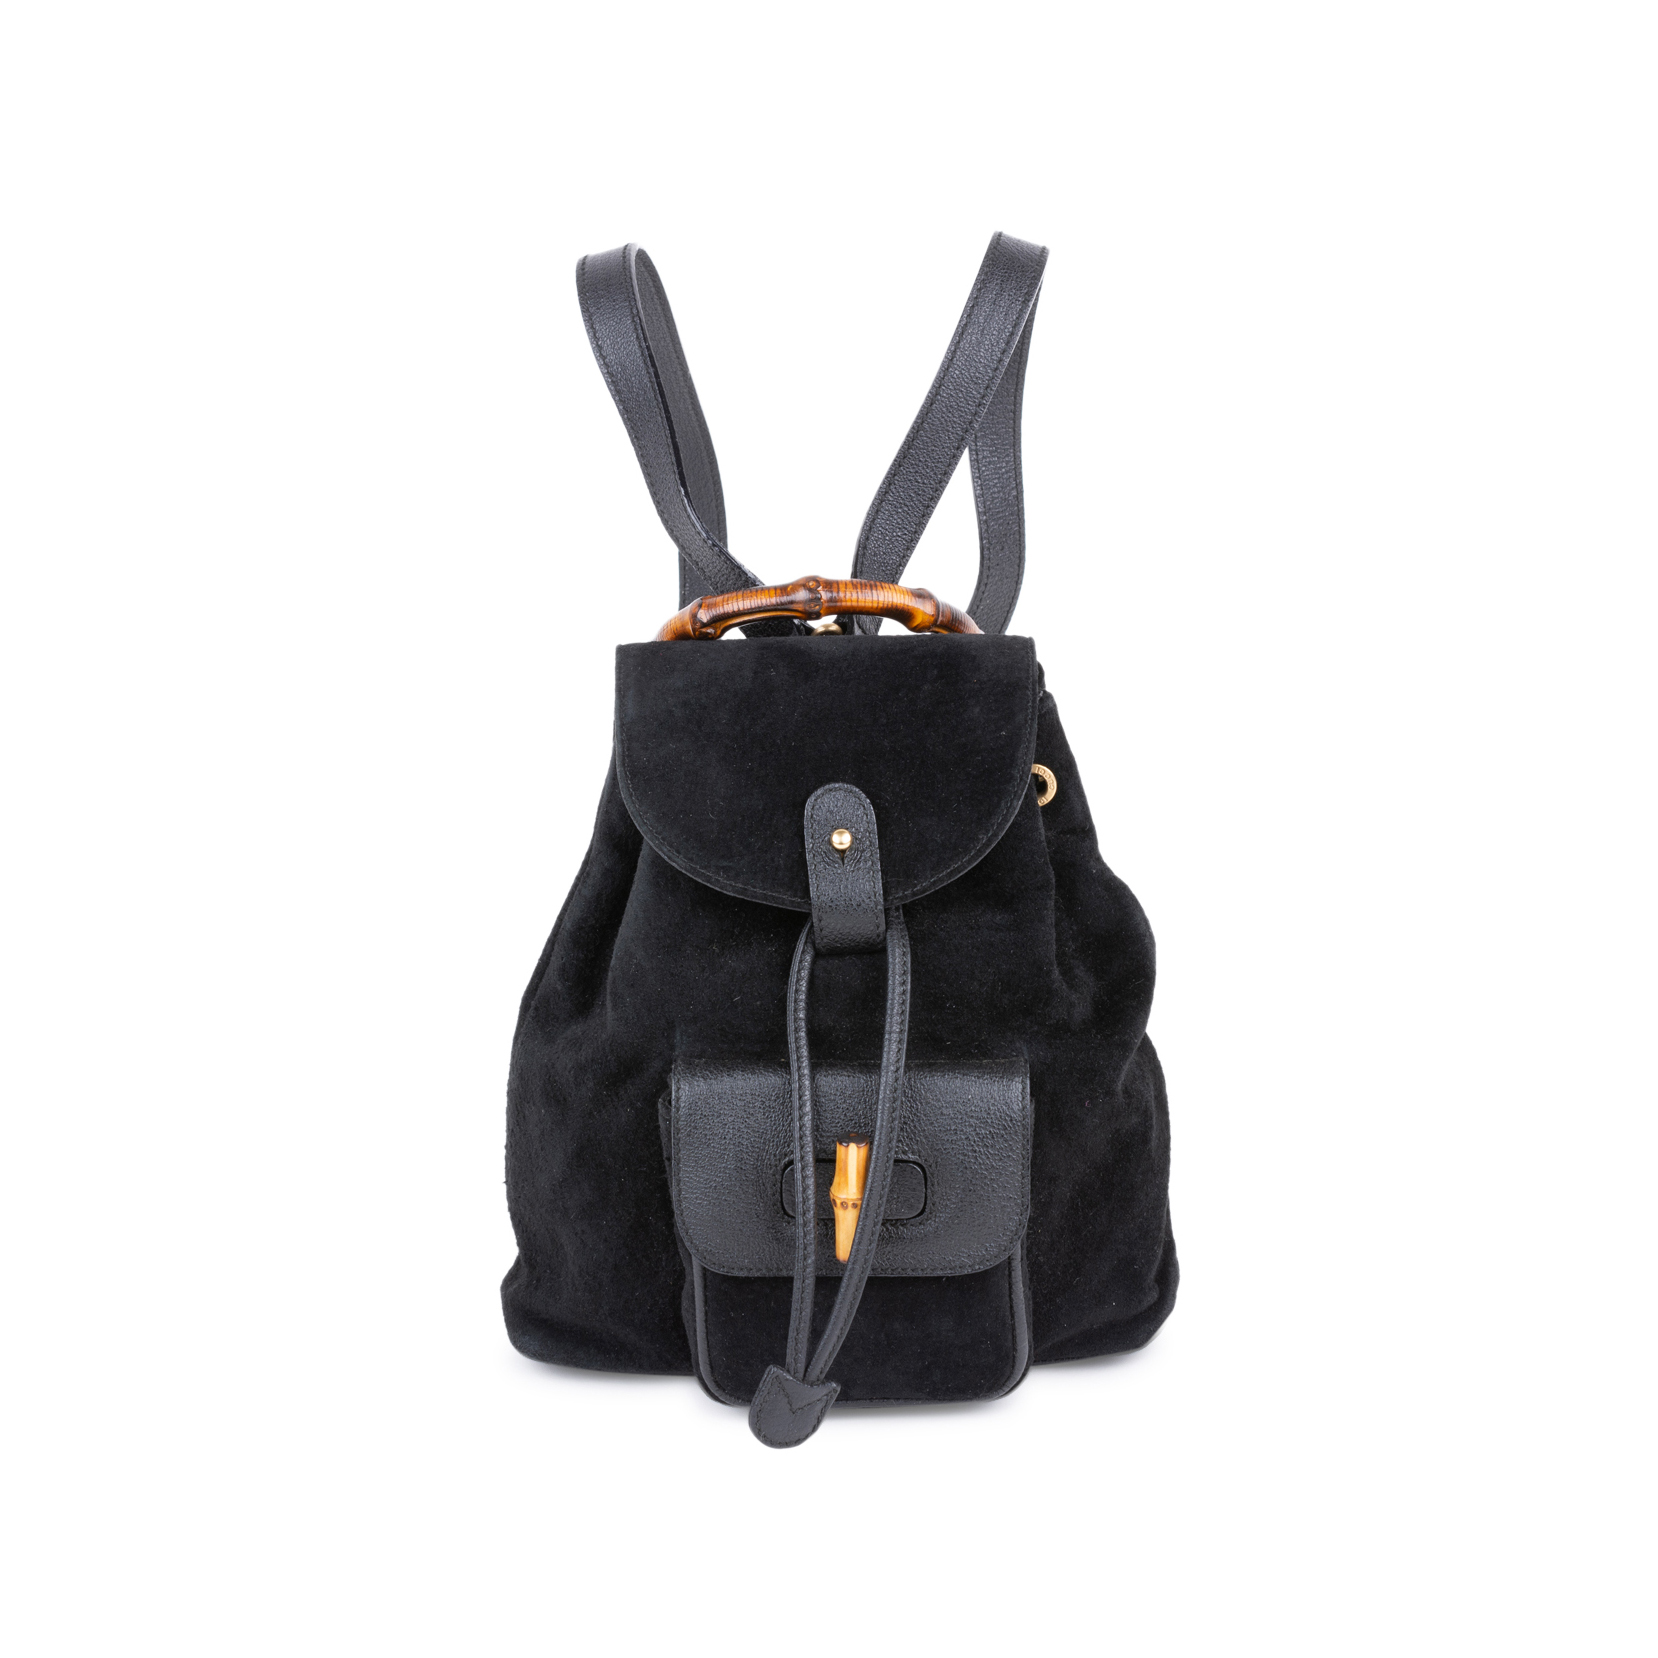 81f3a2af7ff5 Authentic Second Hand Gucci Suede Mini Bamboo Backpack (PSS-591-00008) |  THE FIFTH COLLECTION